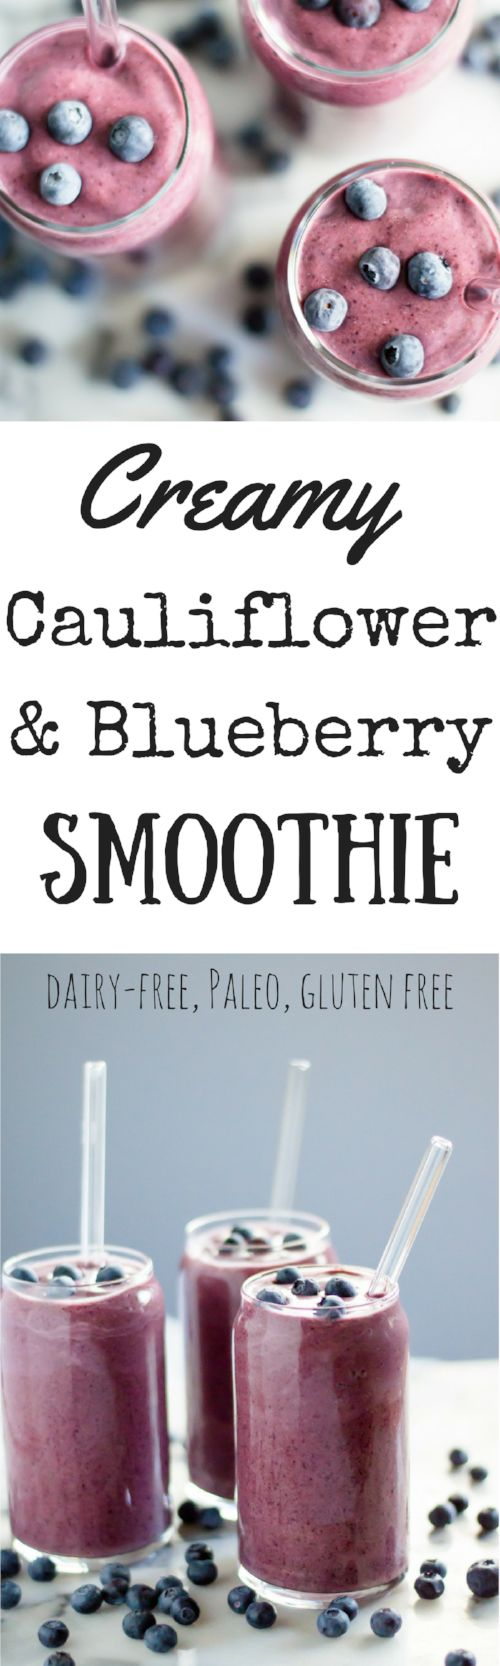 This Creamy Cauliflower & Blueberry Smoothie is loaded with tons of antioxidants, fiber, nutrients, healthy fat and protein.  You'll be totally amazed that you can't taste the cauliflower and will adore how smooth and creamy the cauli makes your morning b